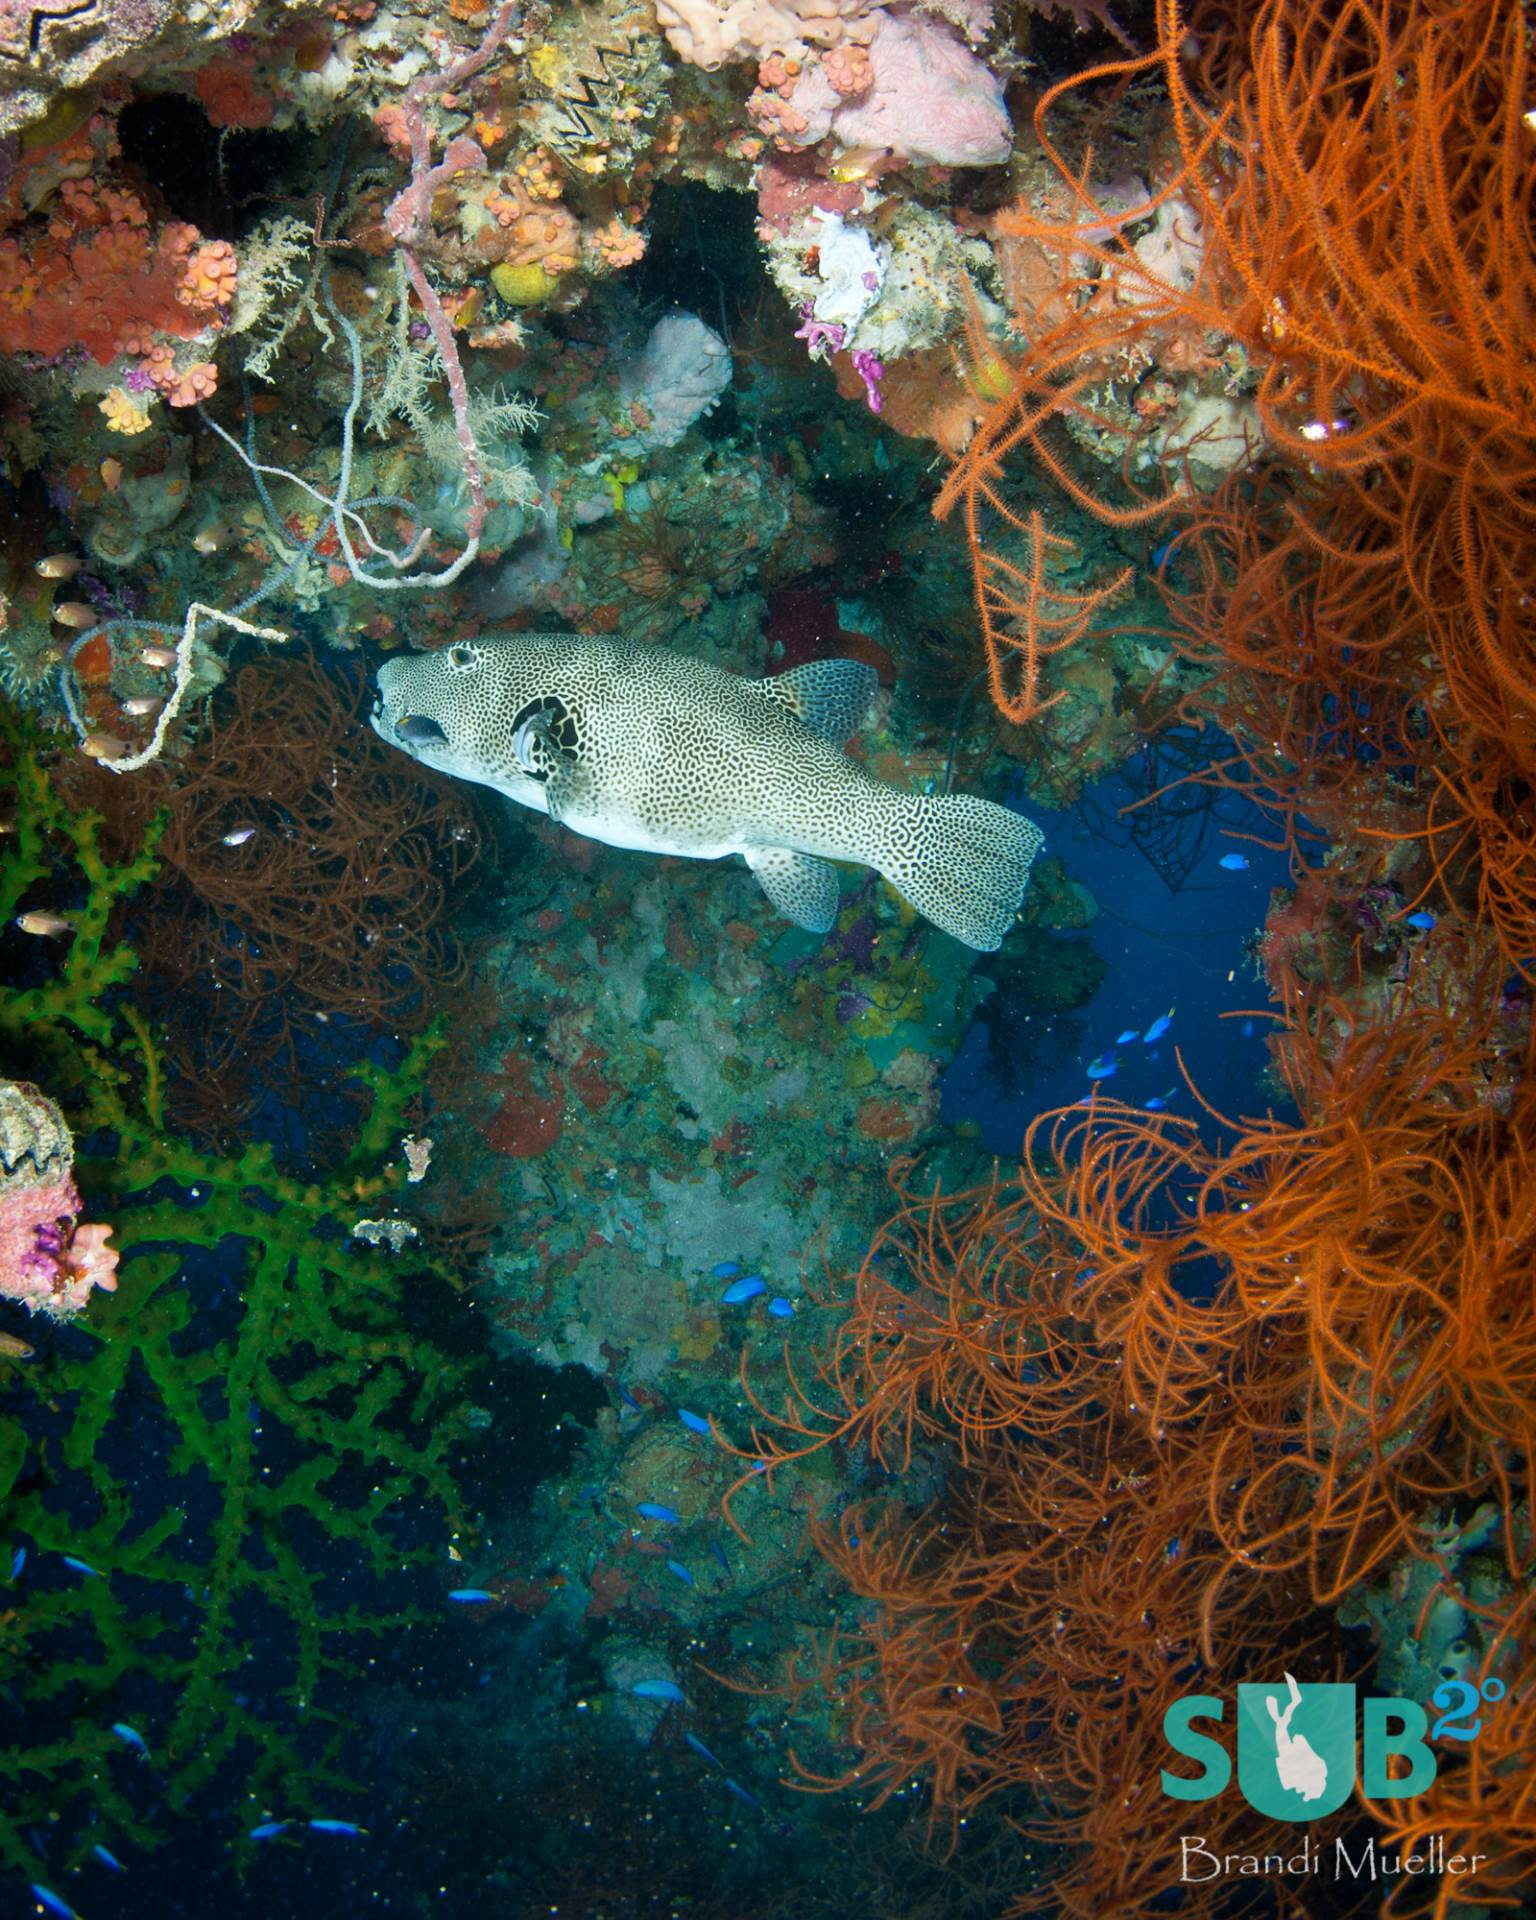 Coral and Fish Life on the Shinkoku Maru